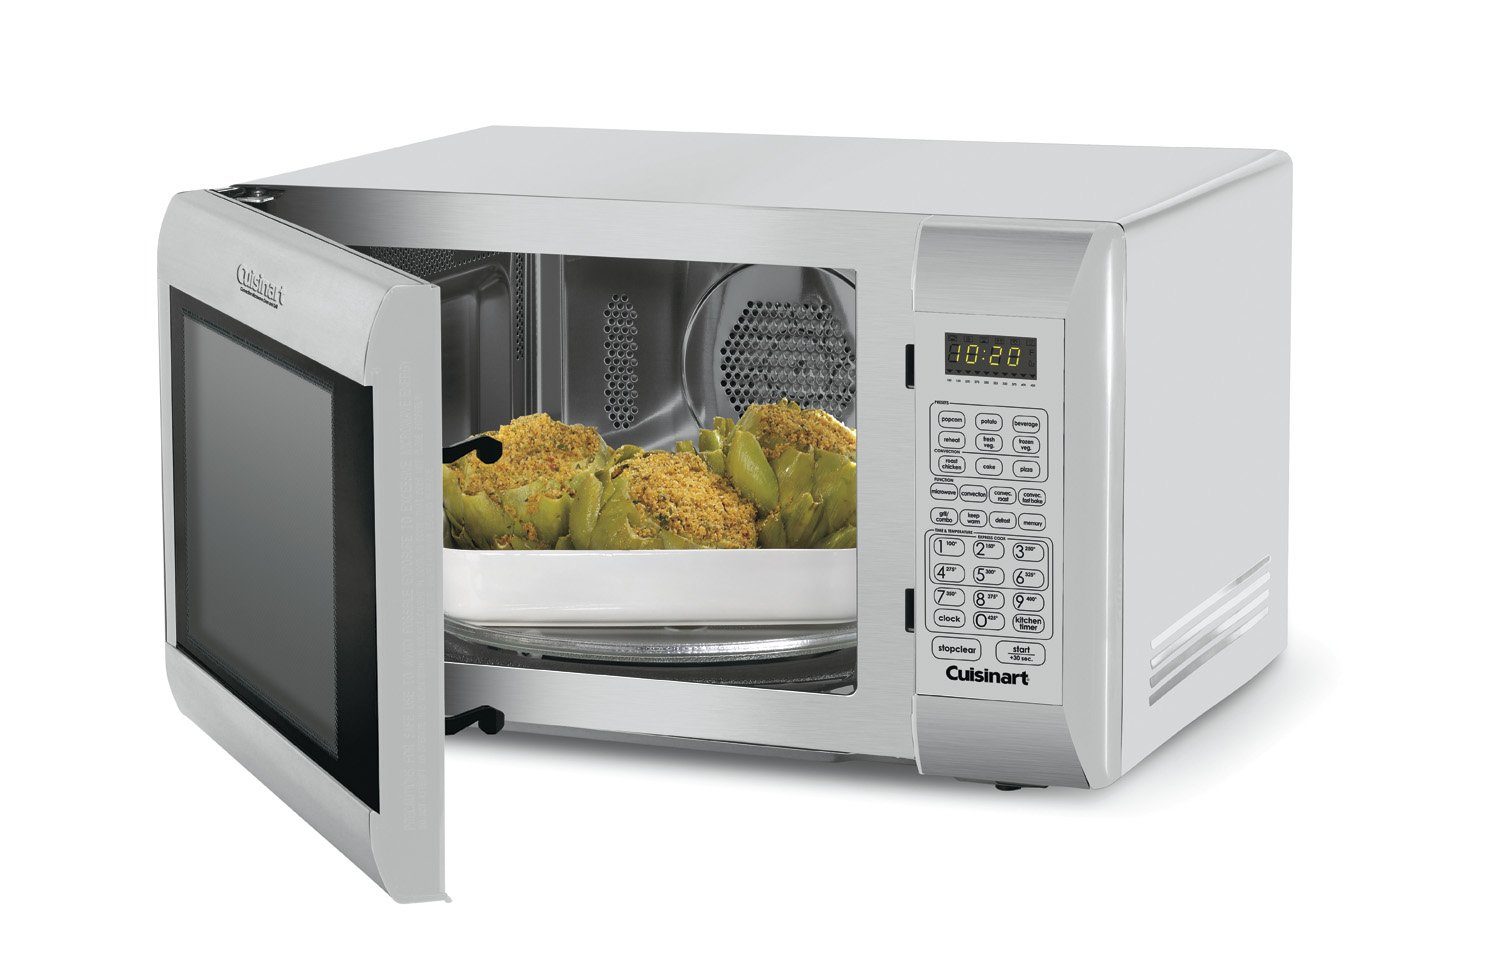 Cuisinart cmw-200 1.2-cubic-foot microwave oven